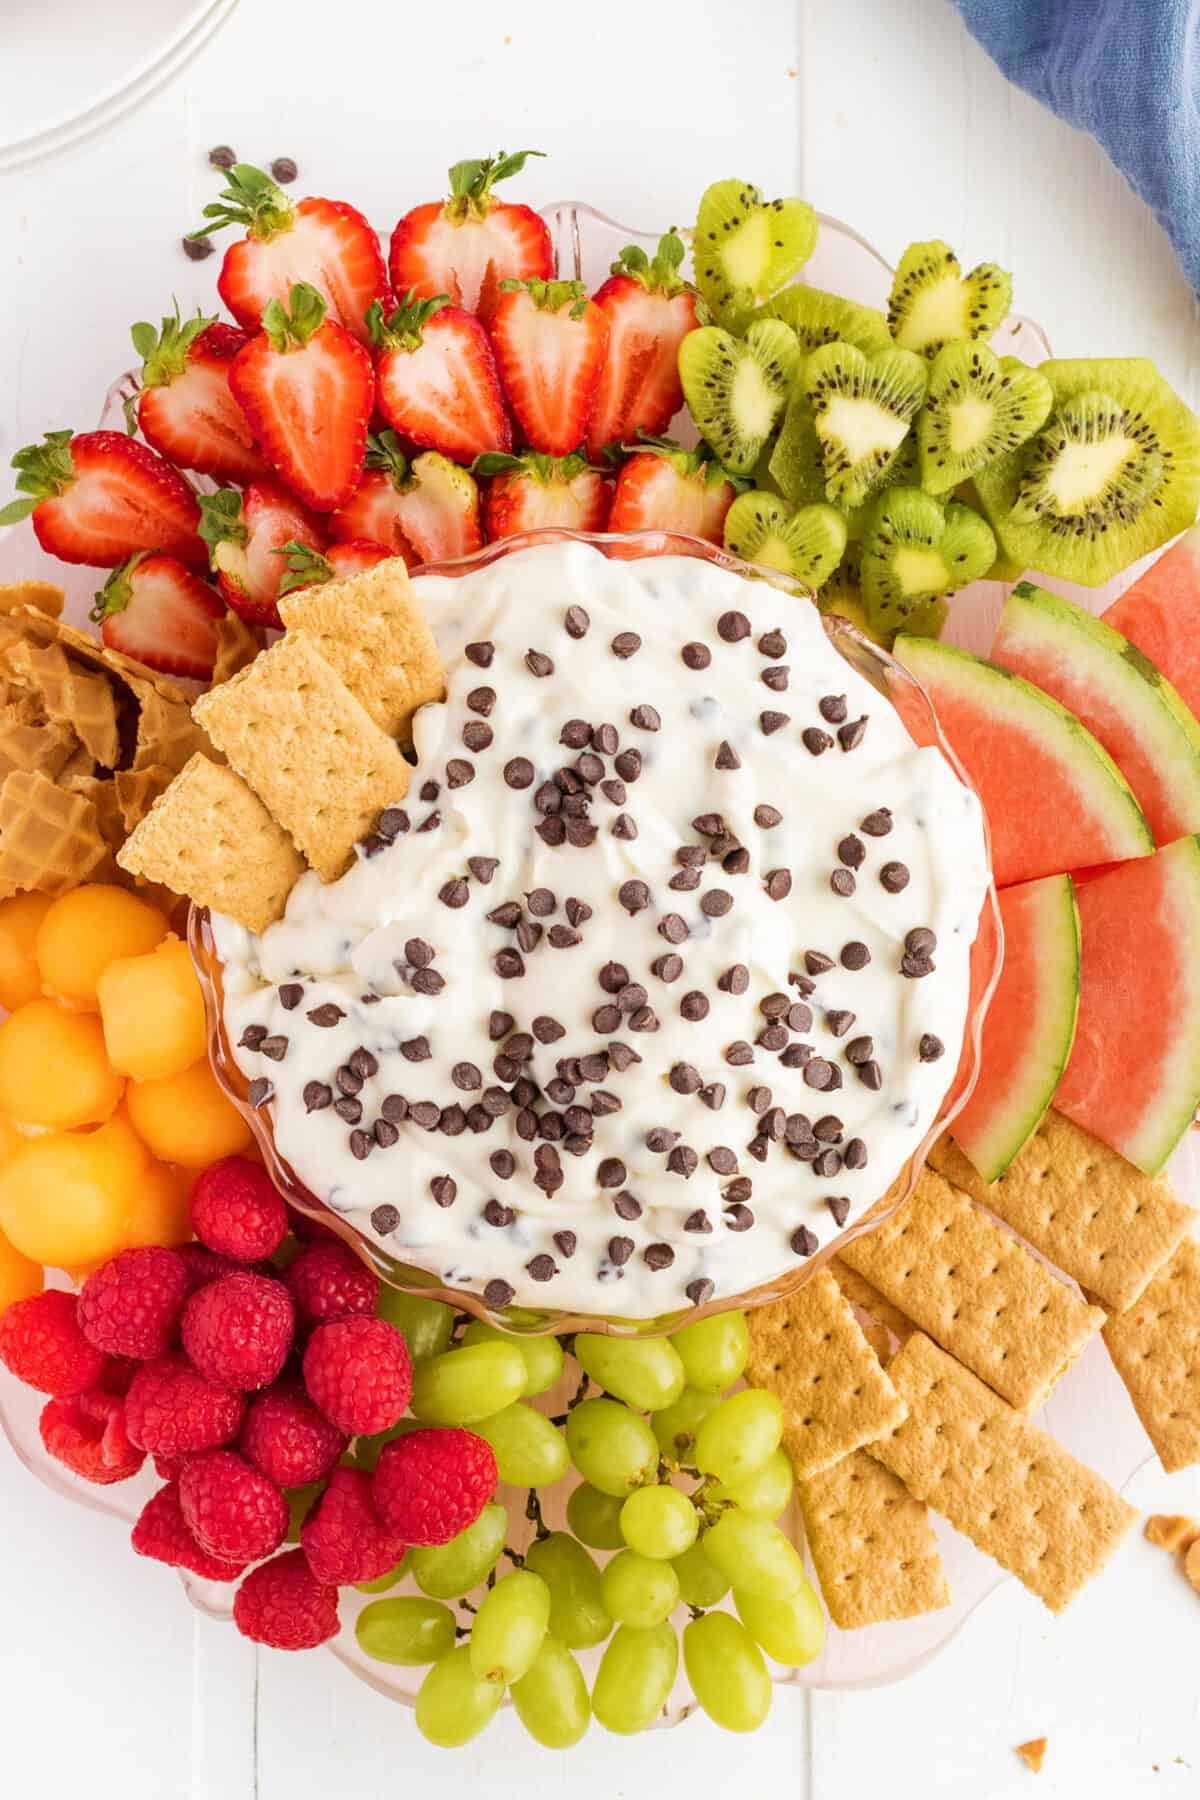 cannoli dip with chocolate chips sprinkled on top surrounded by fruit and cookies